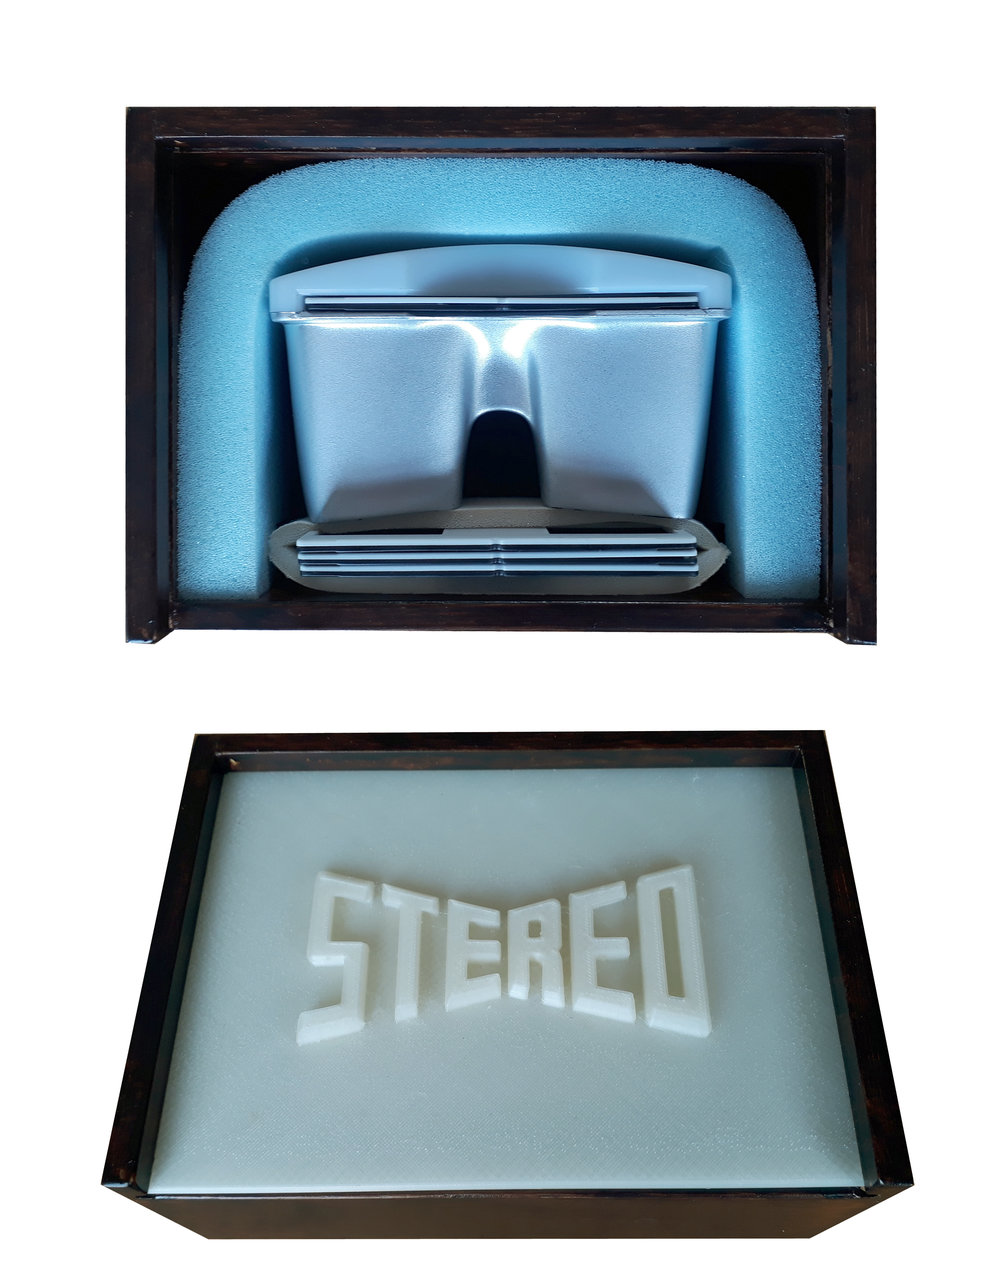 Stereo Box - Stereo viewer with 4 stereo photographs of your choice. Photographs can be chosen from the gallery below. All together in a presentation box with a 3D printed lid.€250/ $300 (excl. shipping costs)